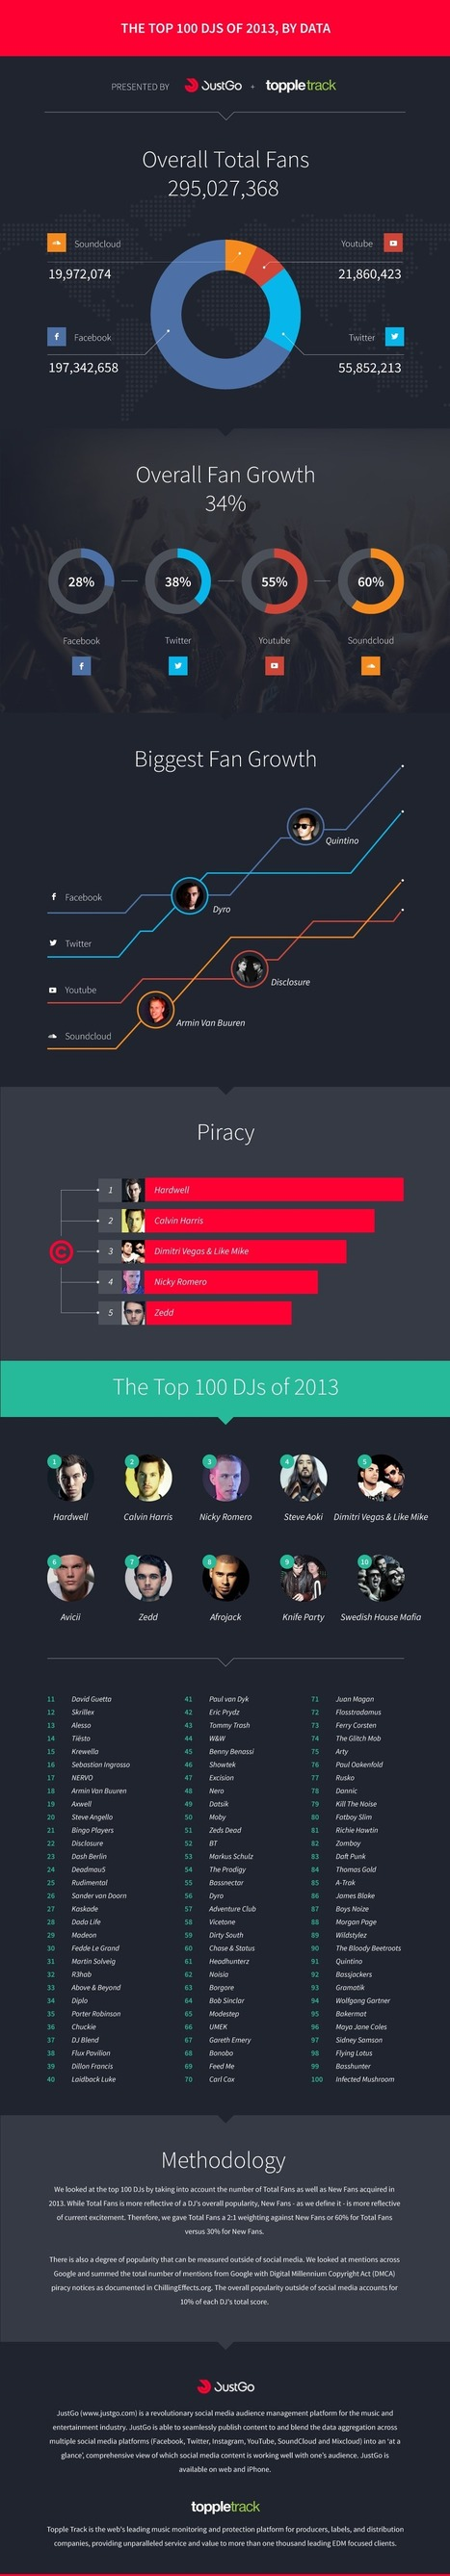 Breaking It Down: The Most Popular DJs According to Social Media Data | esounds | Scoop.it